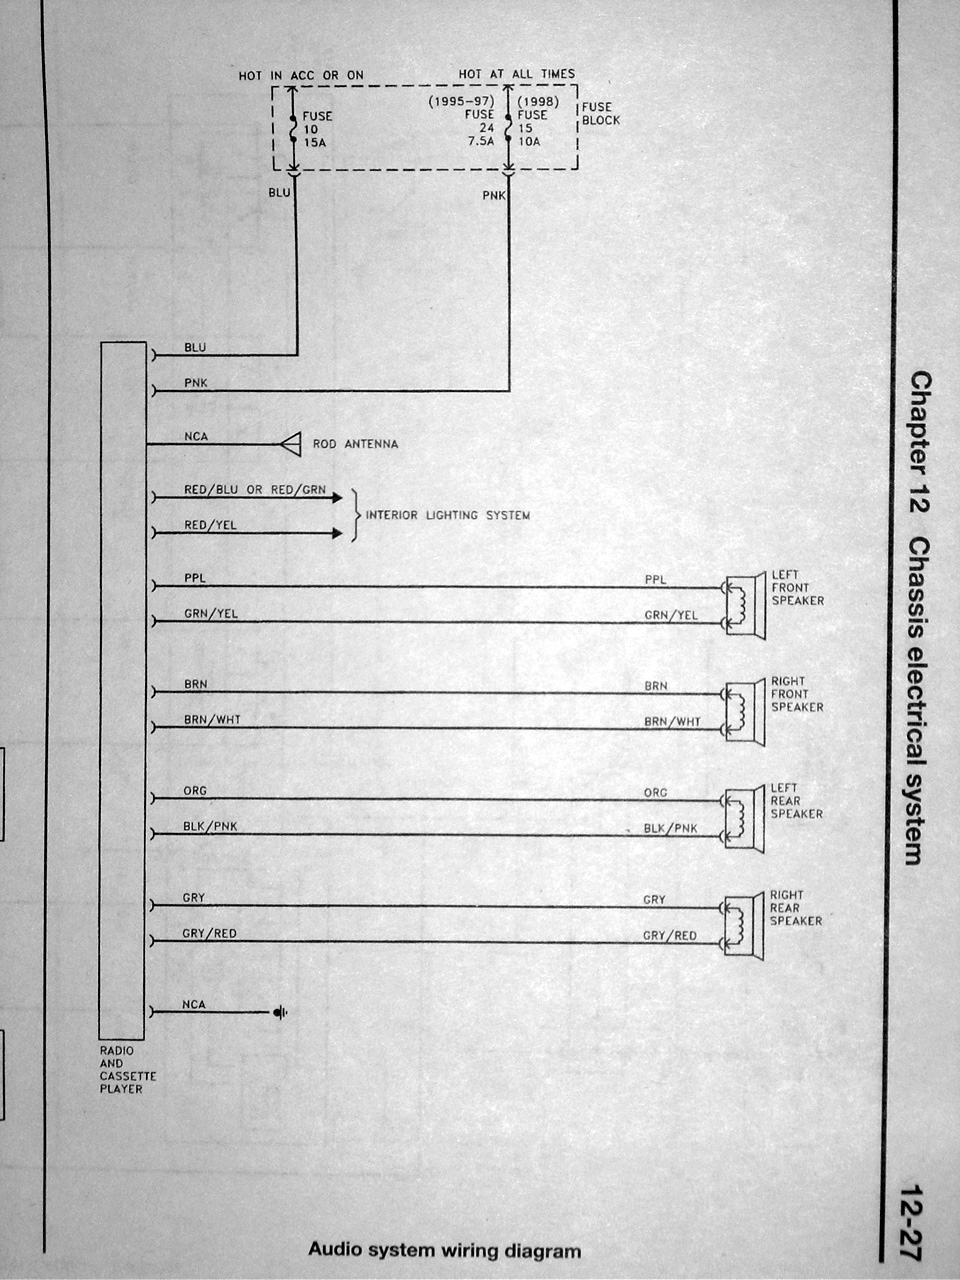 DSC01849 wiring diagram thread *useful info* nissan forum 2001 nissan altima radio wiring diagram at soozxer.org